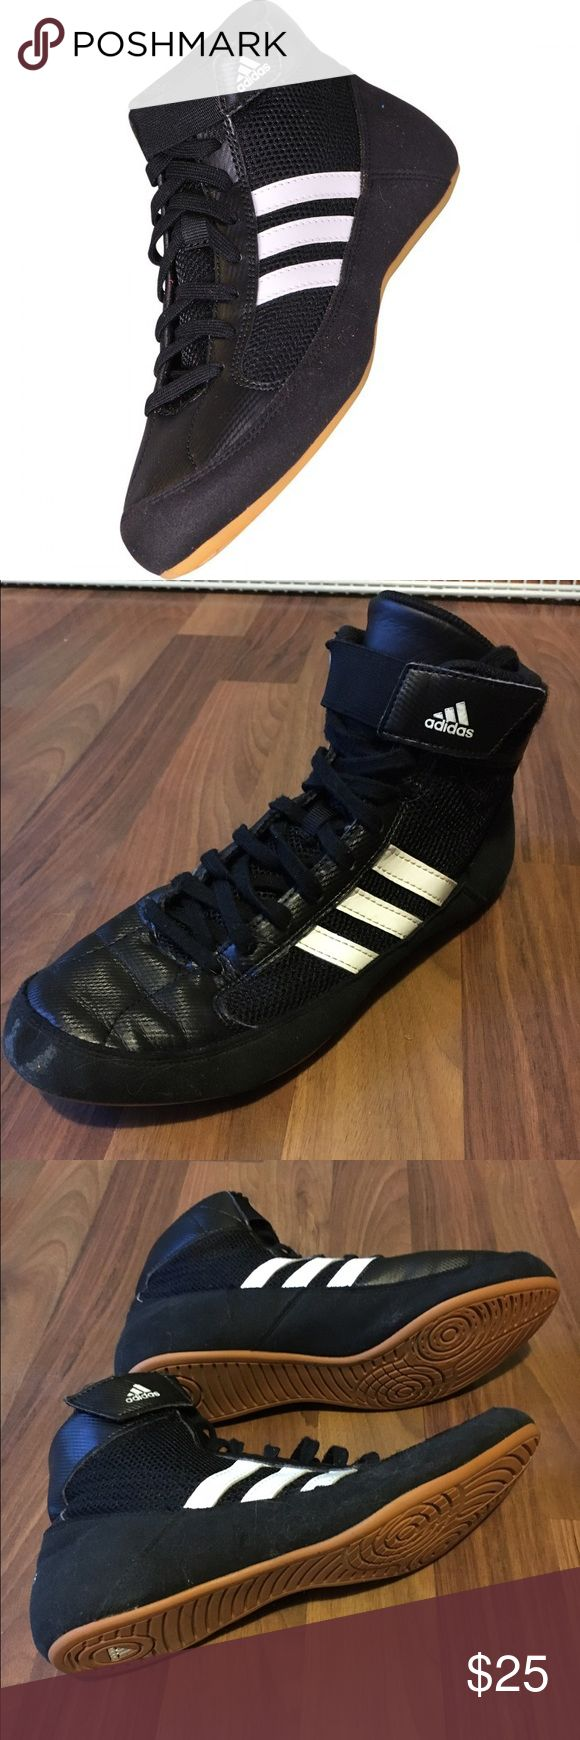 Adidas men's wrestling shoes Like new, they are not stained at all and have so much life left in them they were worn twice!!! Size 7 men's and as shown in pics are in beautiful condition!! Fits true to size but my brother just grew out of them. Adidas Shoes